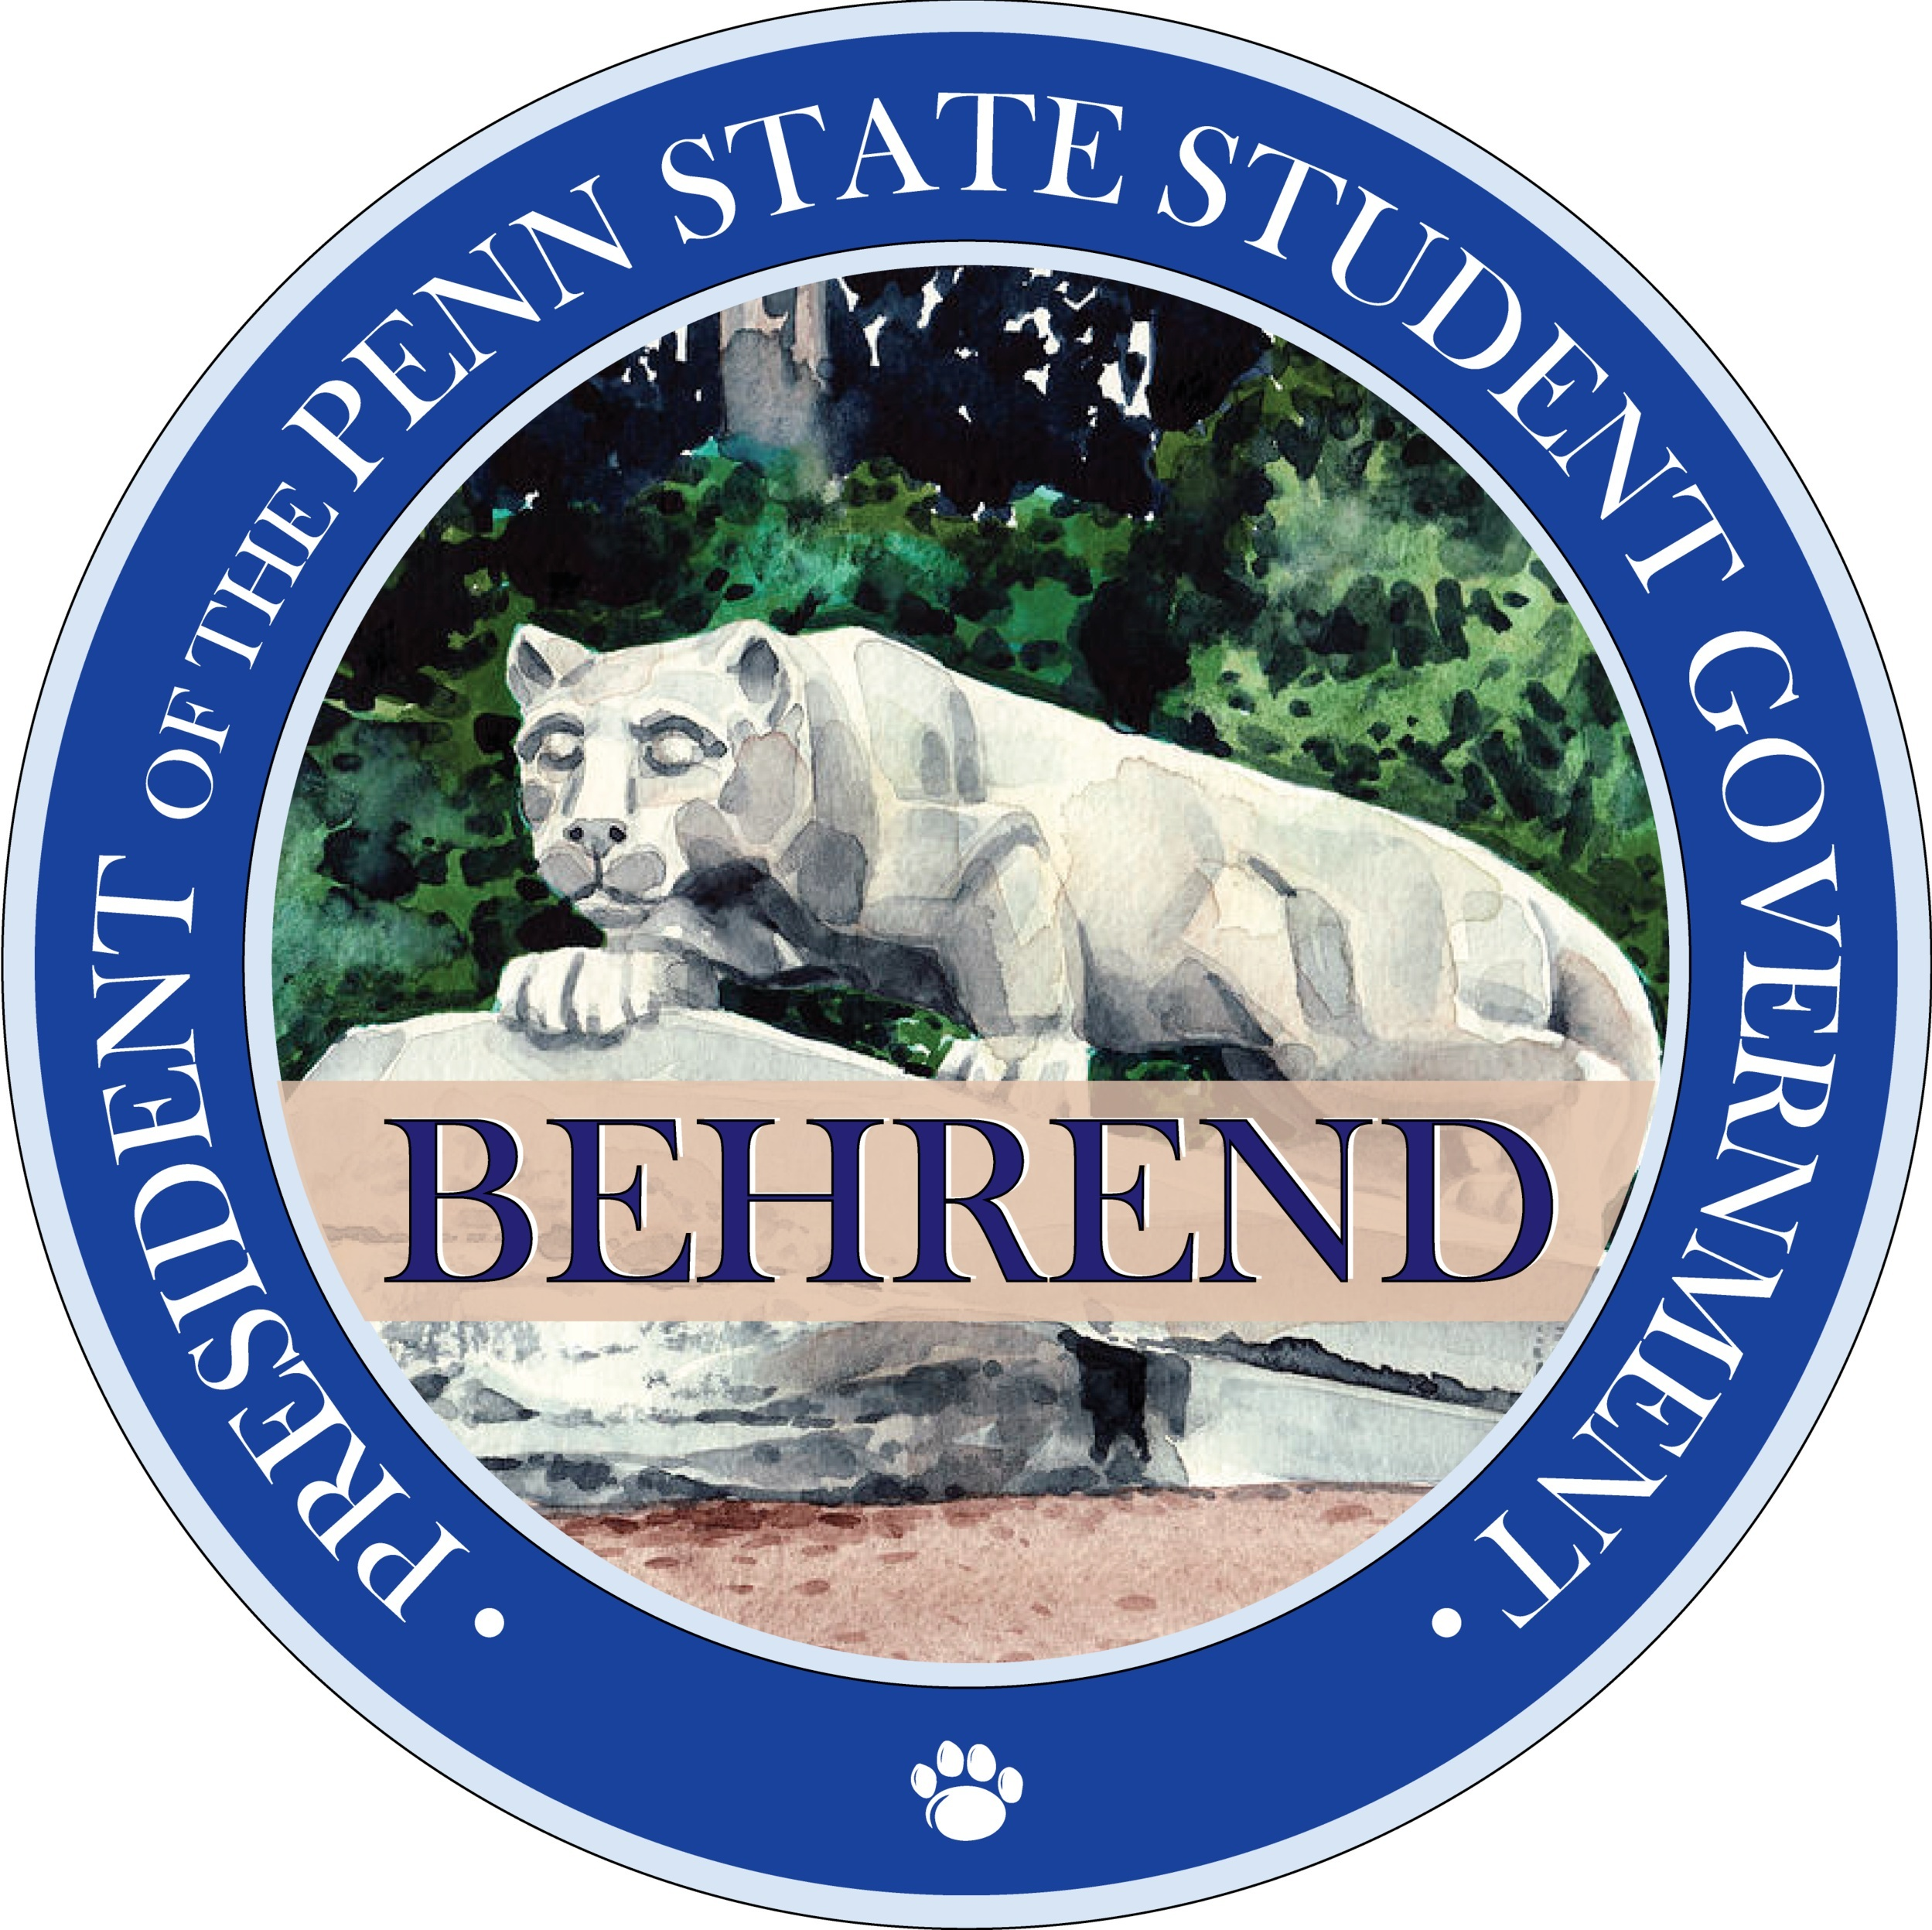 #PuttingtheSGAbacktoworkforyouthestudents - Together, we're building a better future for Penn State Behrend.